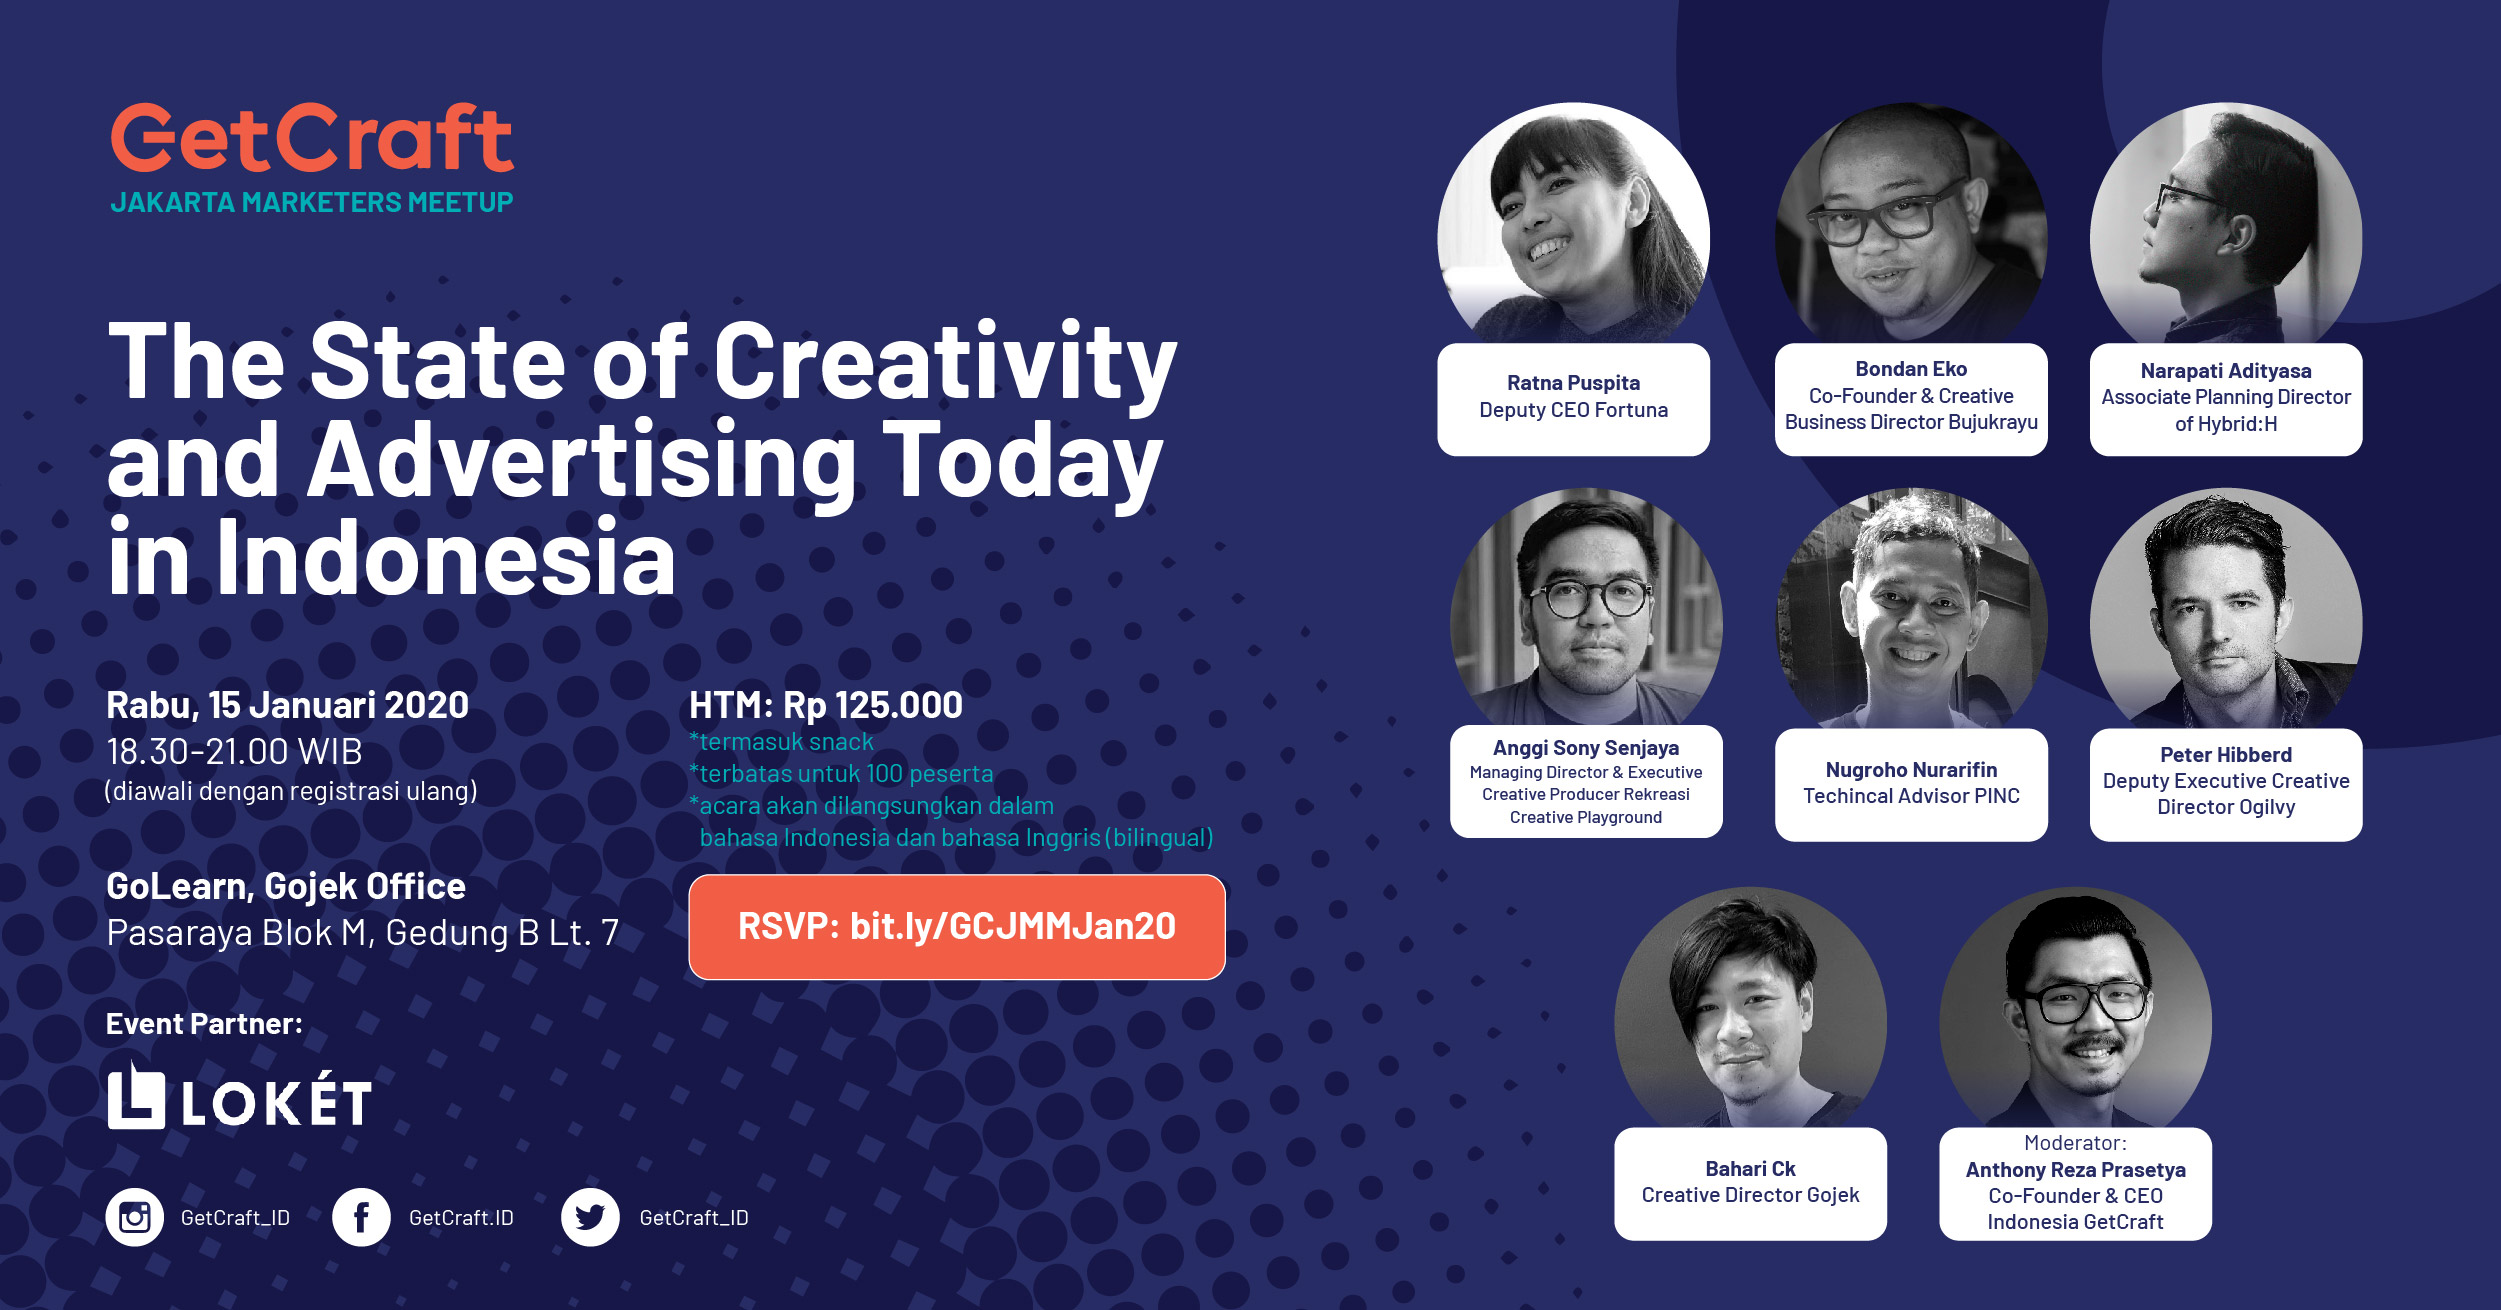 [Upcoming Event!] The State of Creativity and Advertising Today in Indonesia